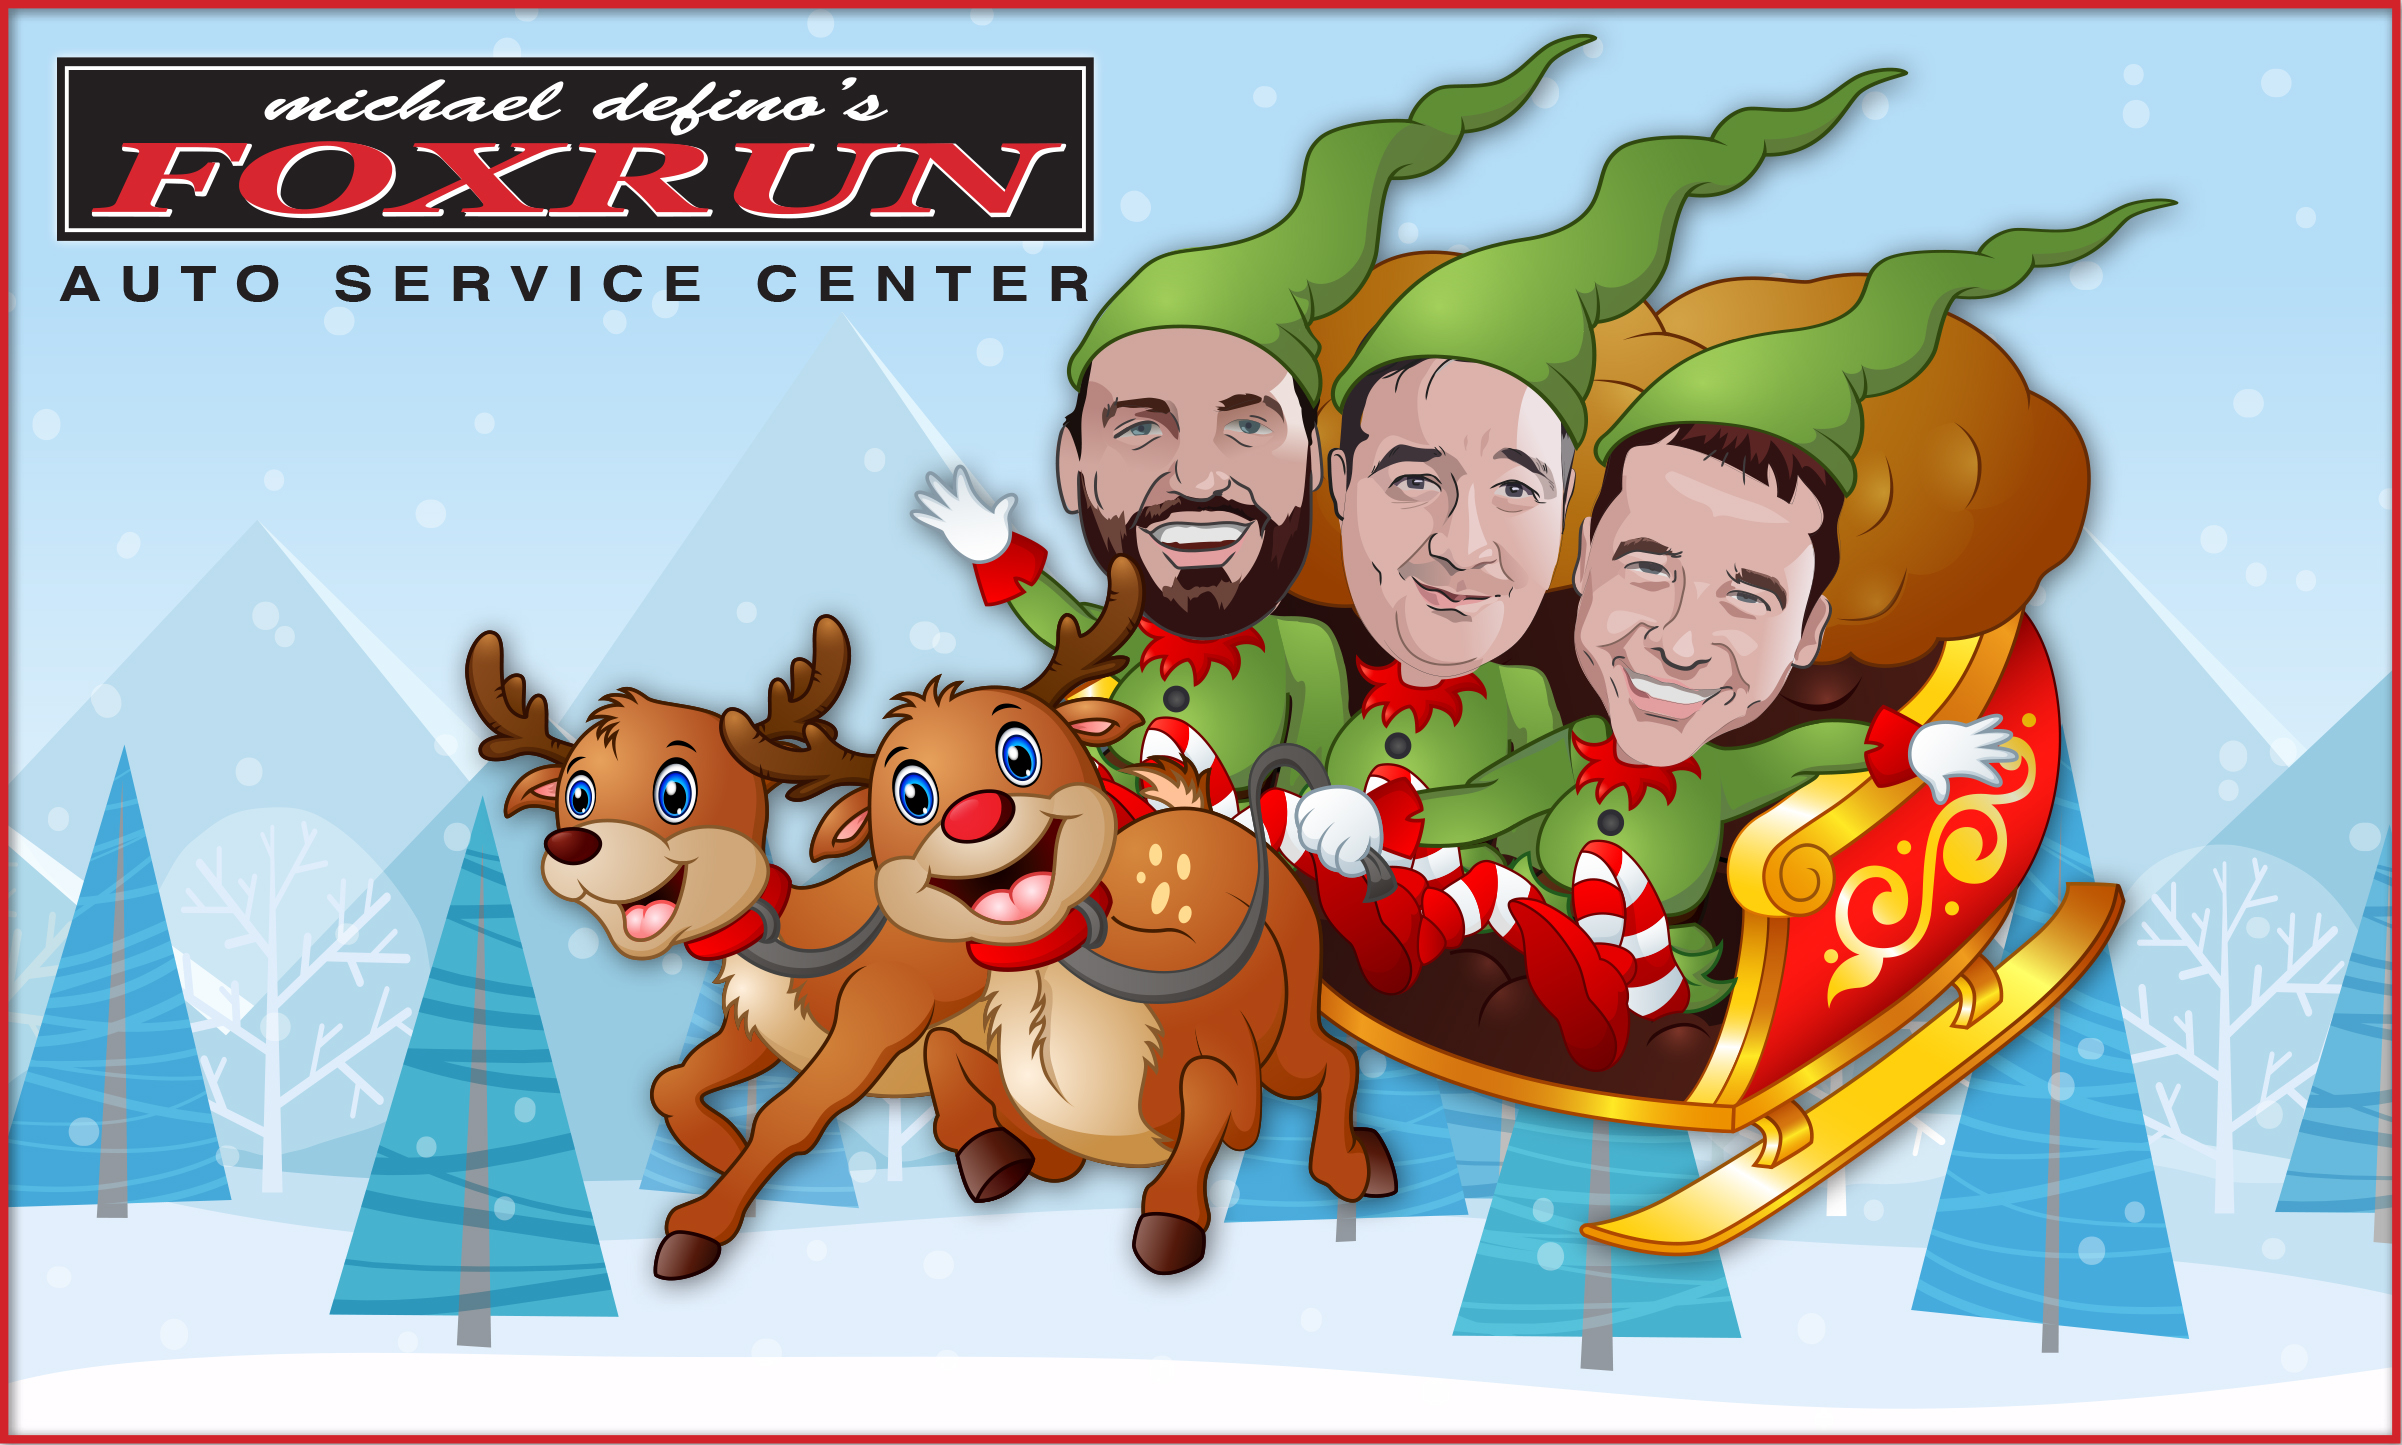 Fox Run Auto Wishes You a Happy Holiday Season!